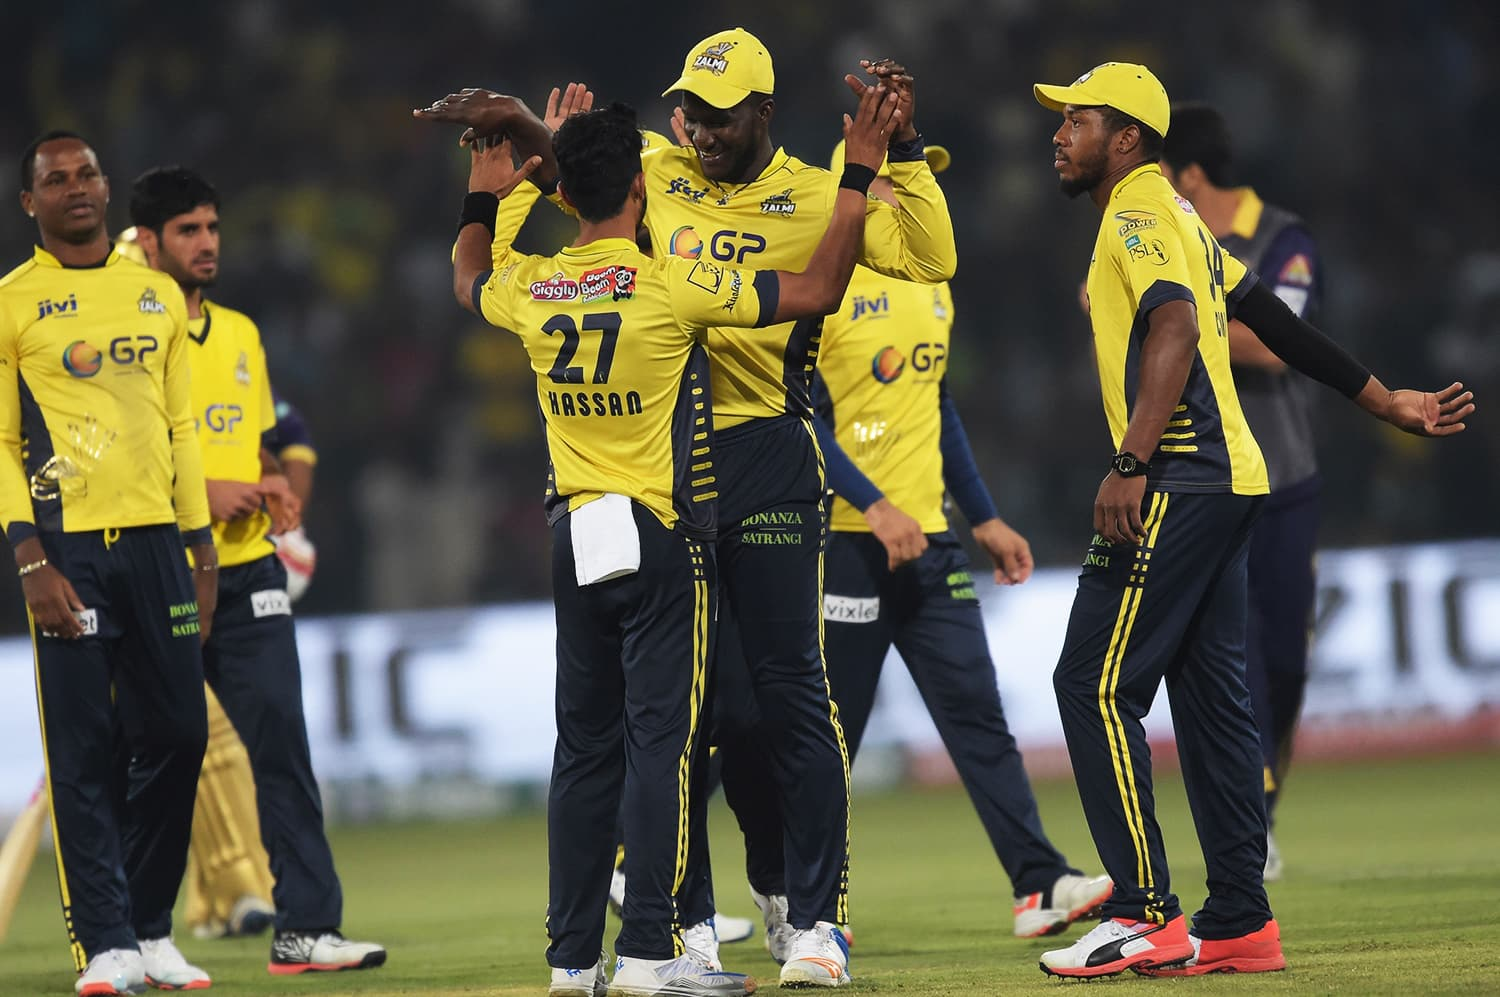 Peshawar Zalmi captain Darren Sammy (C) celebrates with teammate Hassan Ali (C) after dismissal of Quetta Gladiators batsman Ahmed Shehzad. ─ AFP